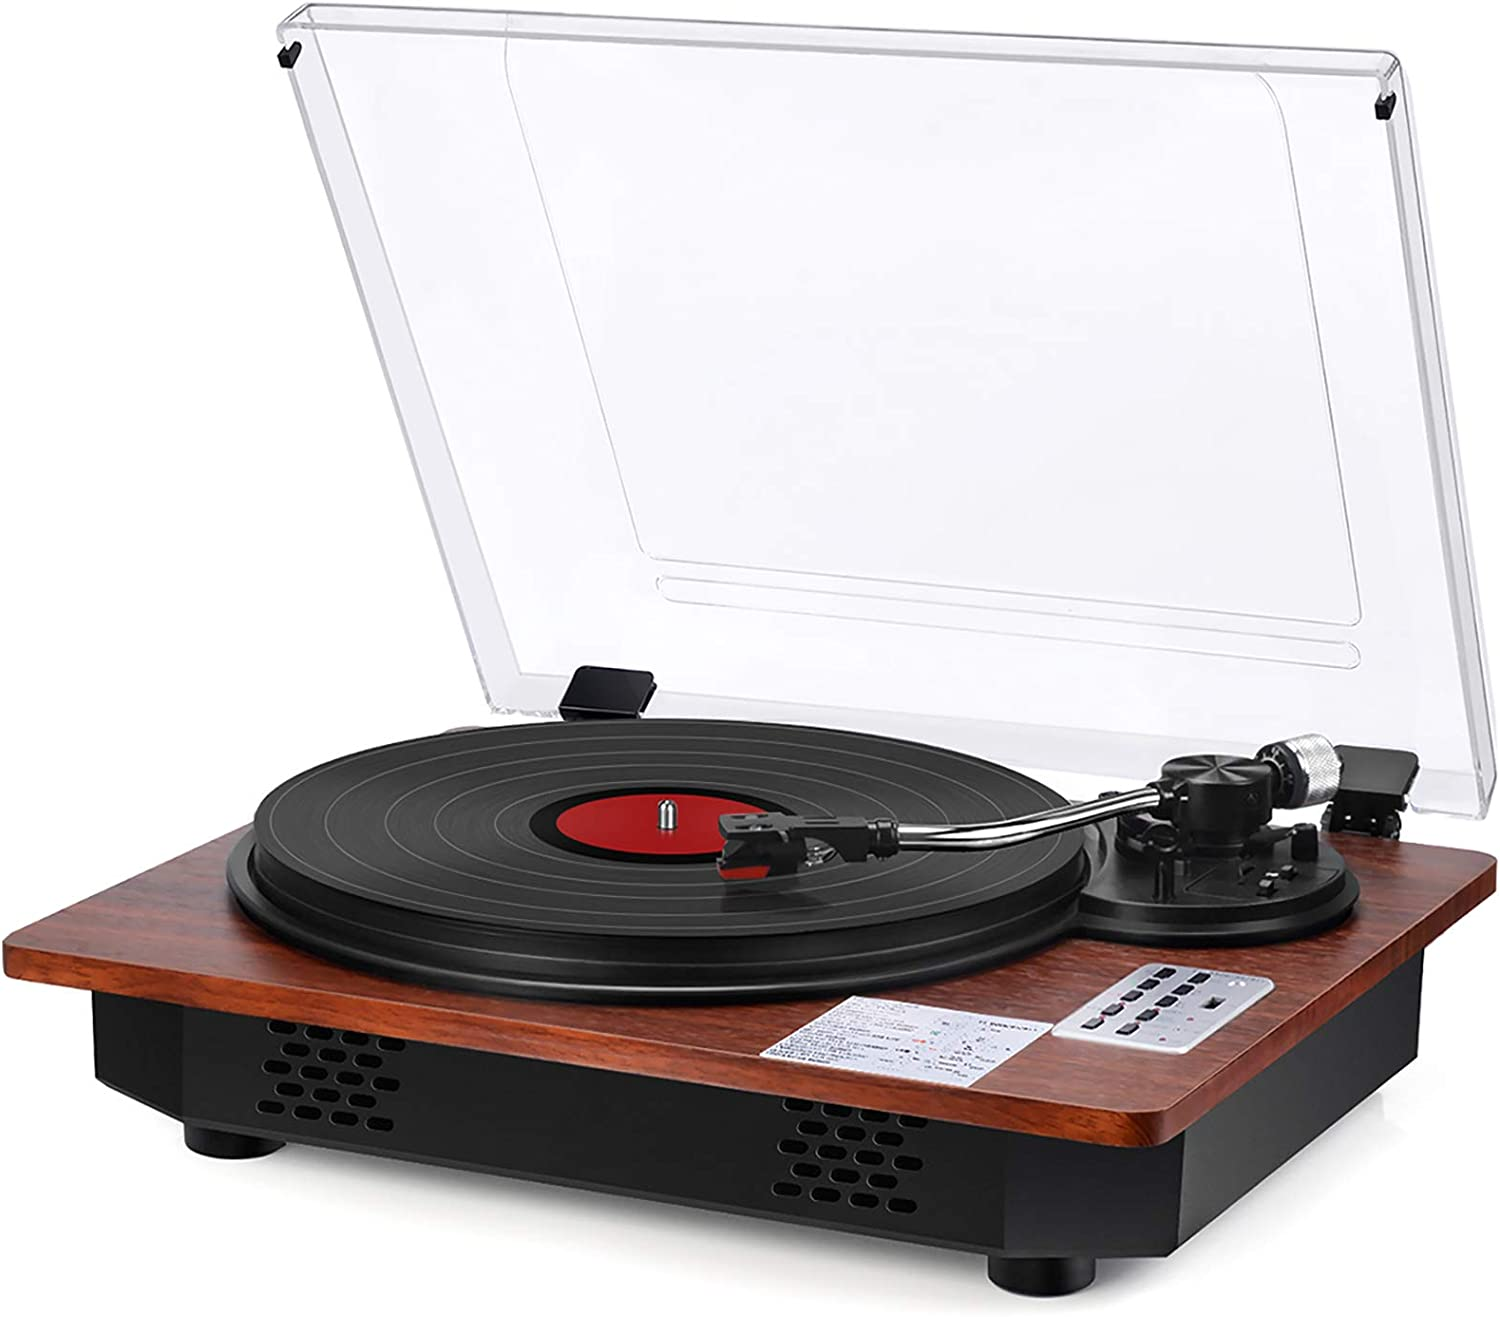 Vinyl Record Player with Speakers Turntable Bluetooth Input Output USB Recording Vinyl Record Player